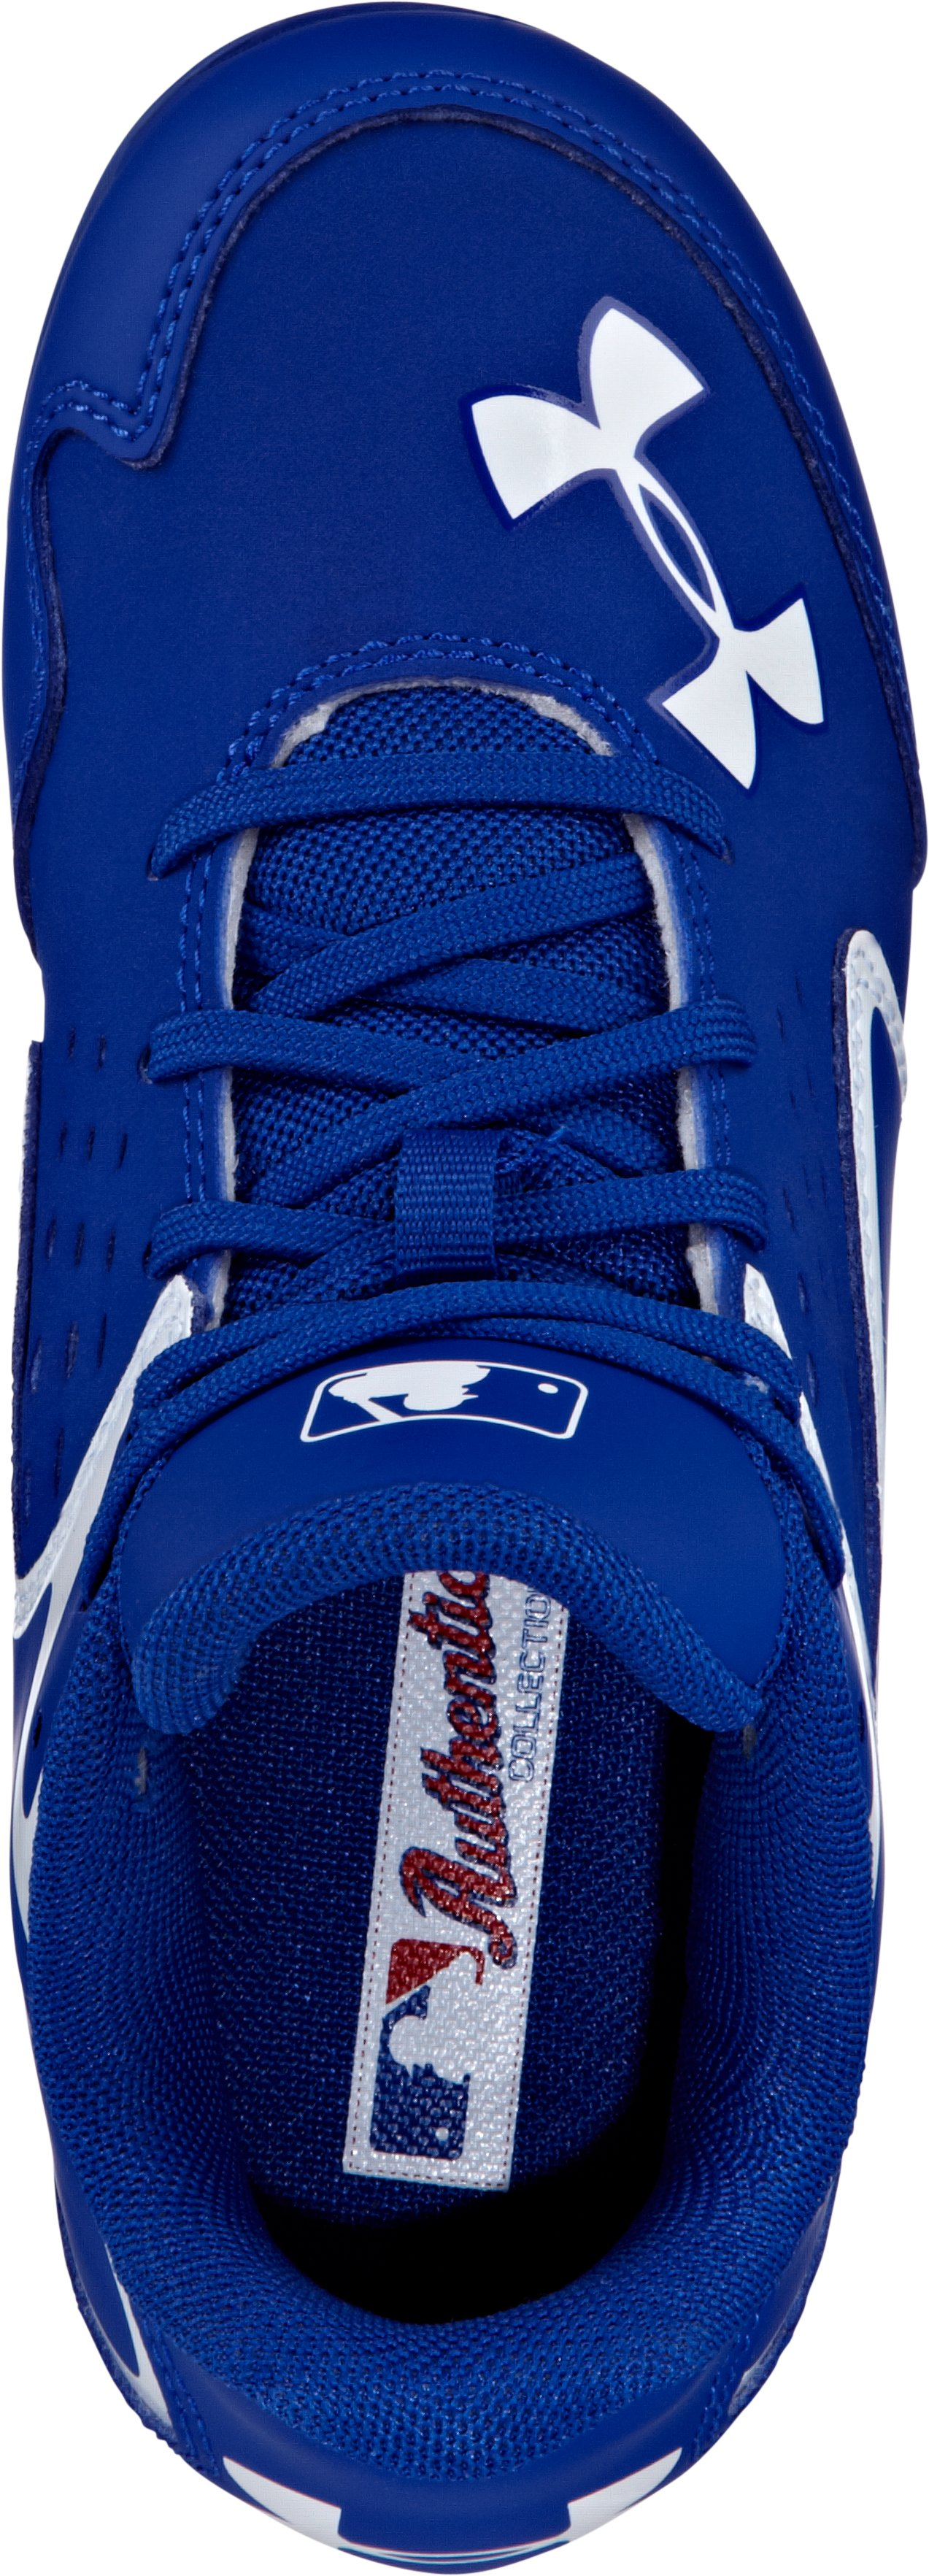 Kids' UA Clean Up Low RM Baseball Cleats, Royal